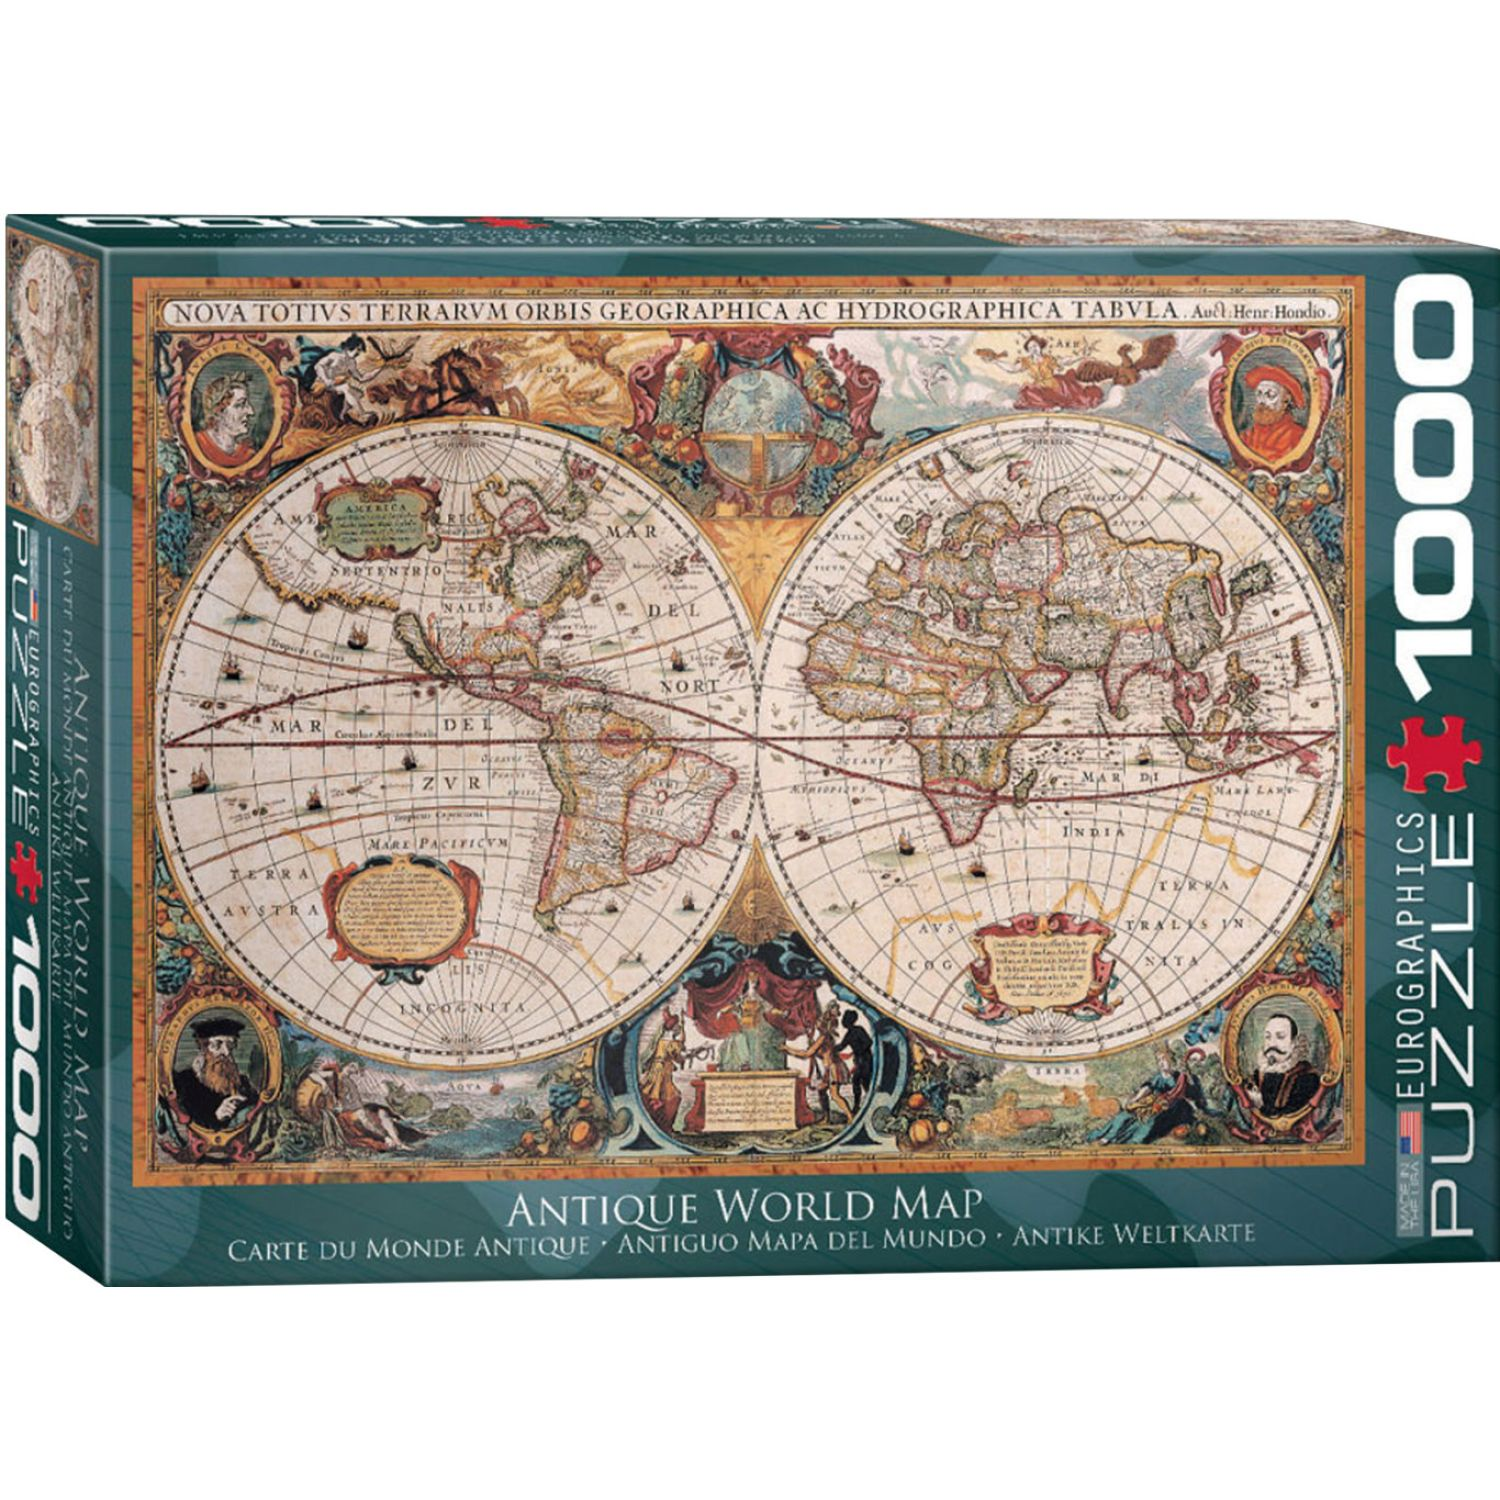 EUROGRAPHICS Antique World Map (Orbis Geographica) Varios Rompecabezas 3-d